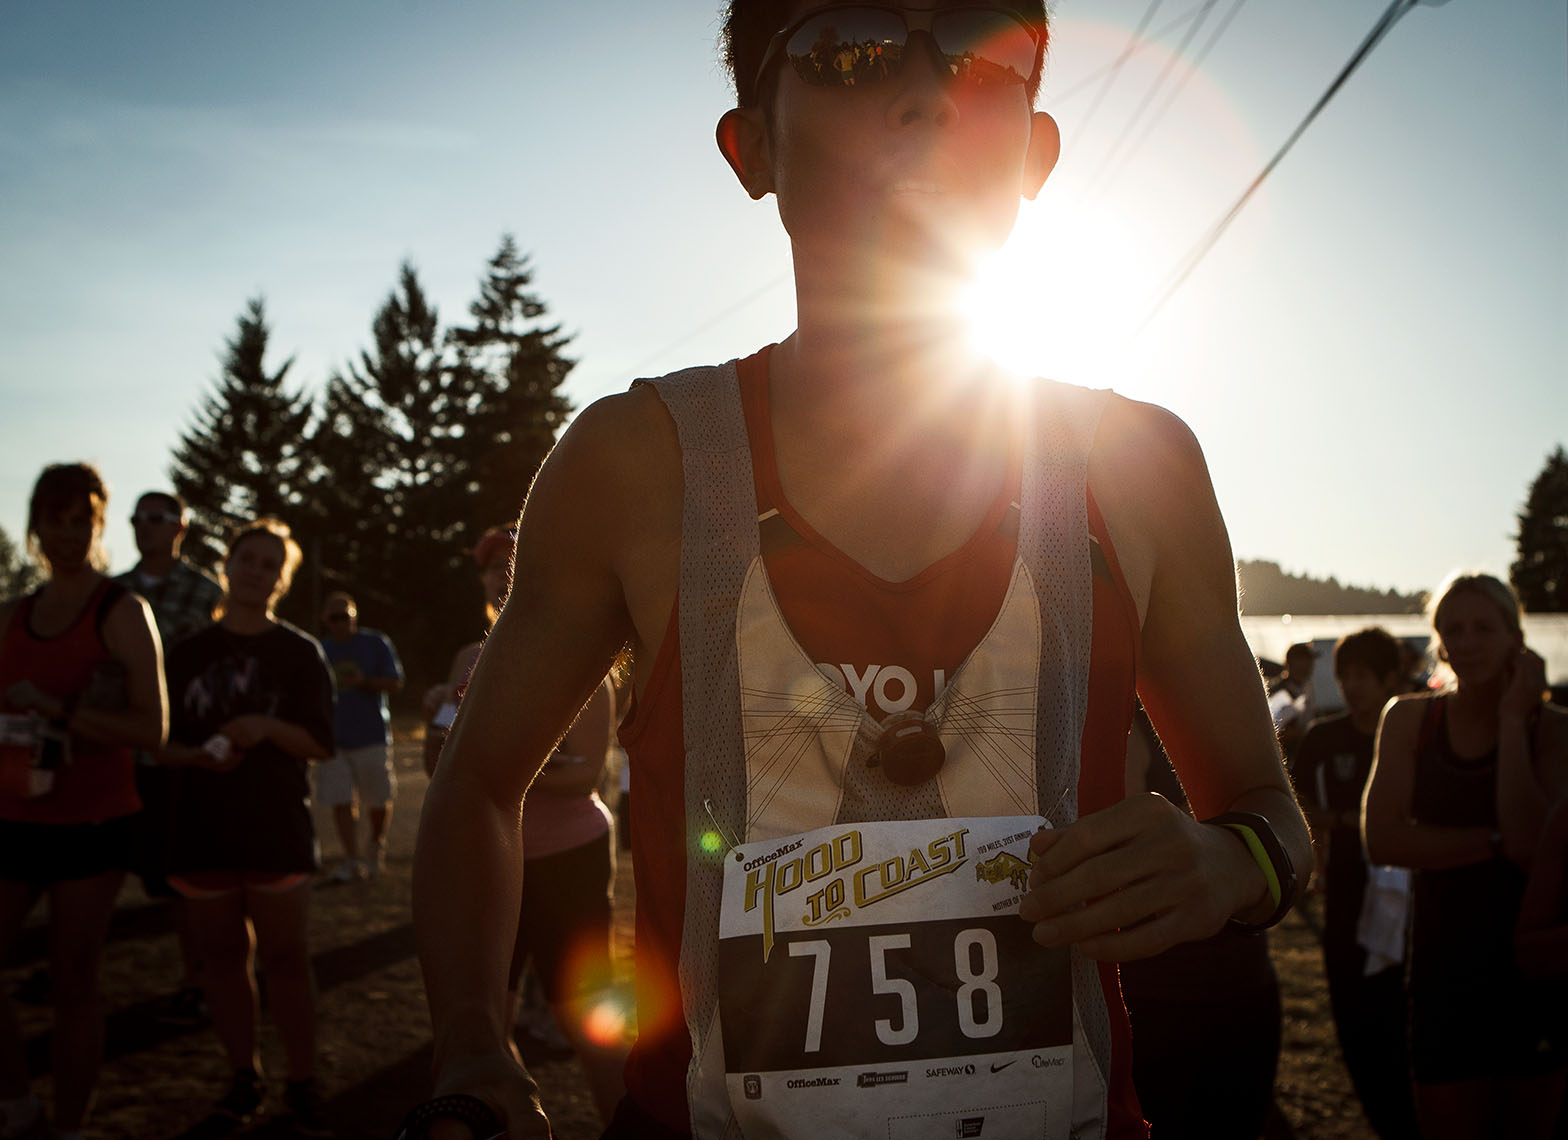 Hood to Coast_Toyo University_Dan Root_13